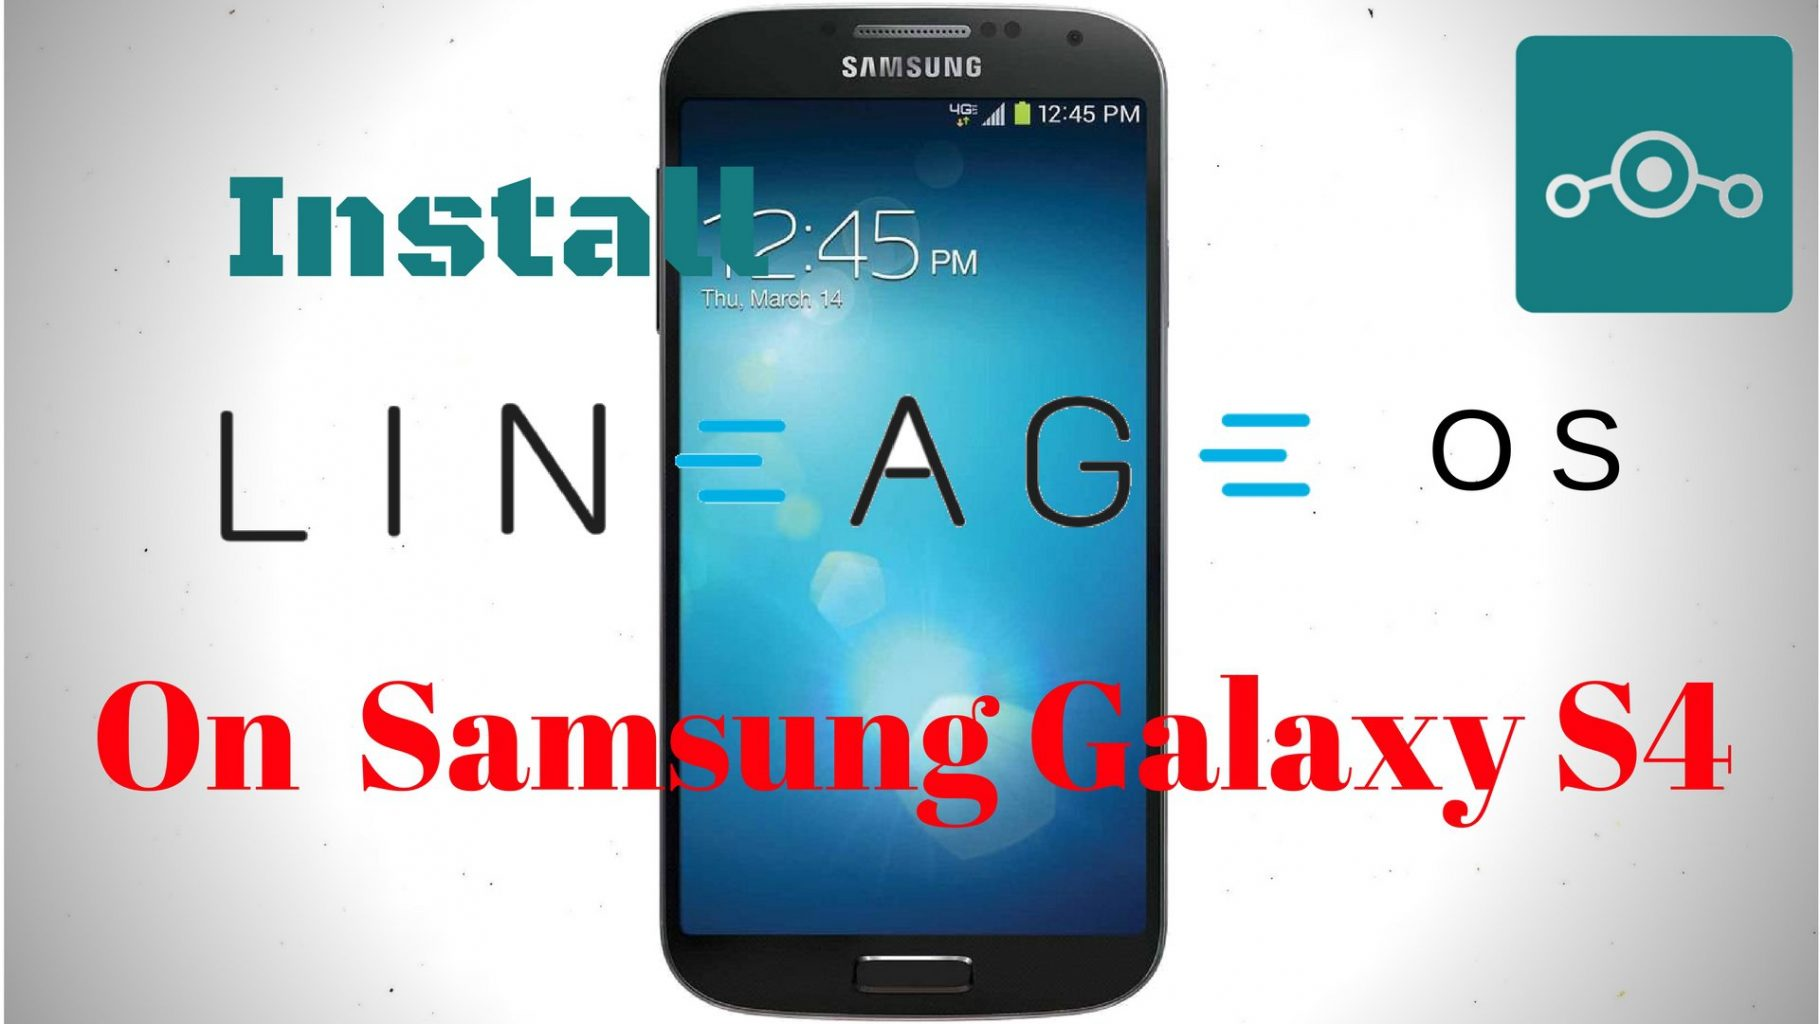 Install Lineage OS 14 1 On Samsung Galaxy S4 (jfltexx